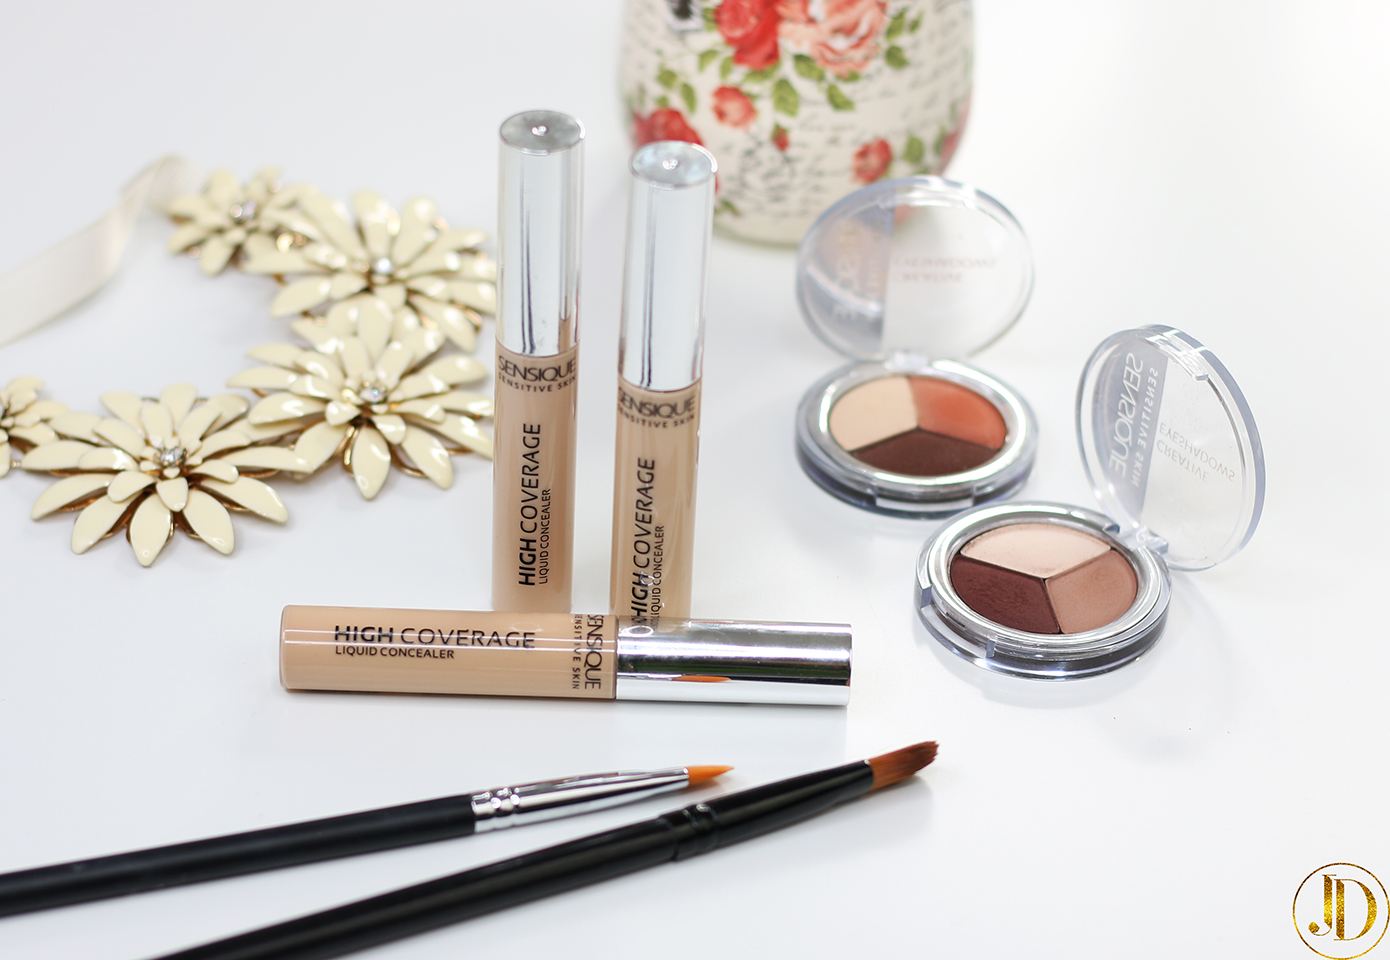 ZAKRYJ TO! - NIE MA SPRAWY ;) - Recenzja korektora Sensique High Coverage Liquid Concealer